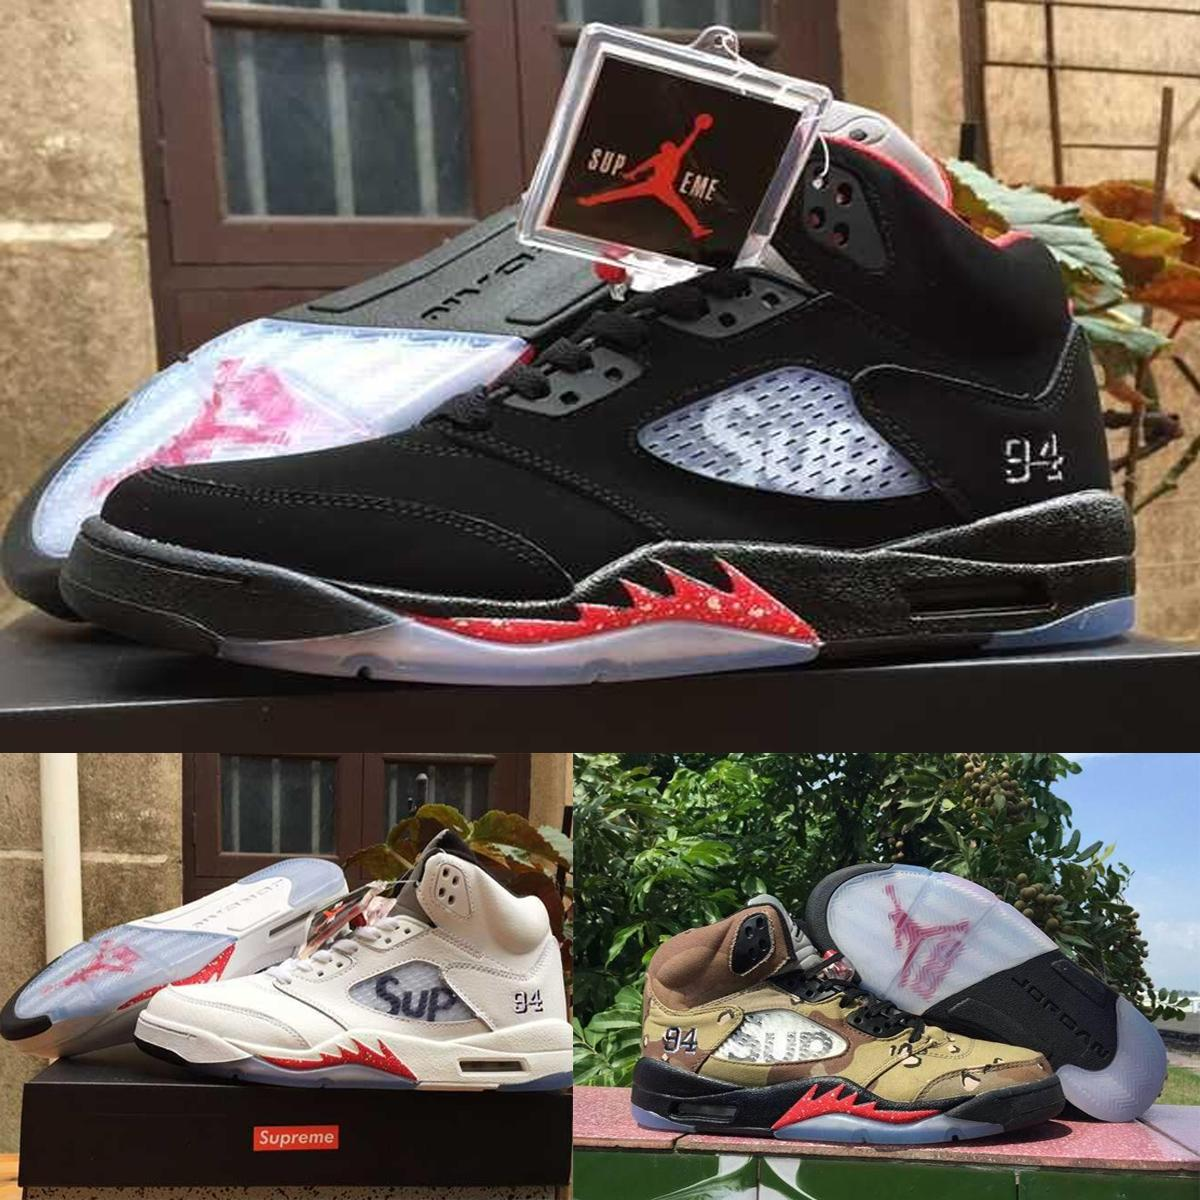 742f17067e0 Nike Air Jordan 5 Supreme Retro V Sup 5S Desert Camo Black White Mens  Basketball Shoes